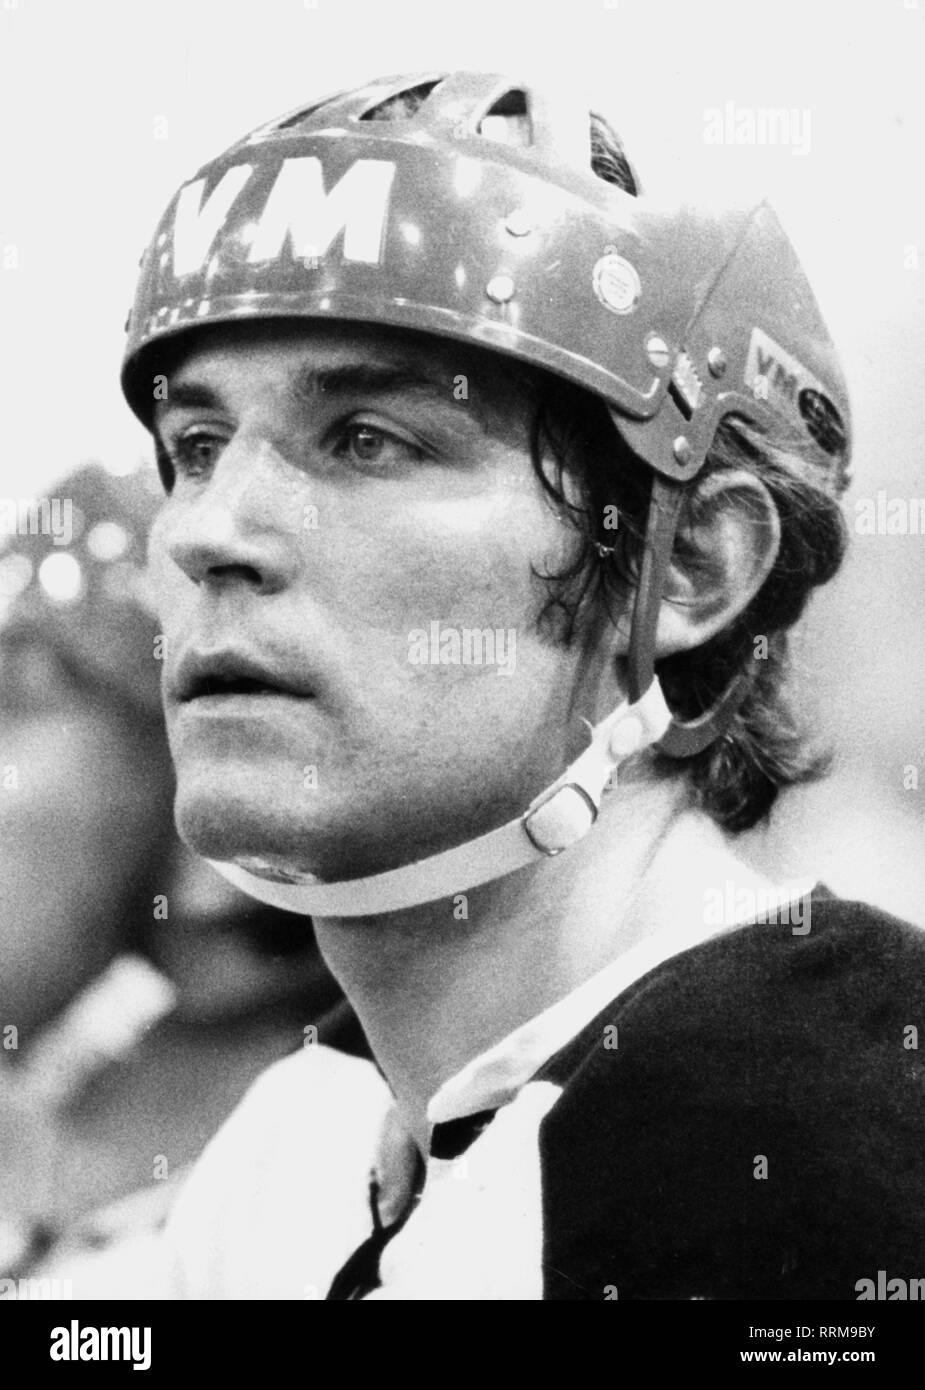 Schloder, Alois, * 11.8.1947, German ice-hockey player, striker of EV Landshut, as international at the Olympic winter games in Sapporo, portrait, 9.2.1972, Additional-Rights-Clearance-Info-Not-Available - Stock Image